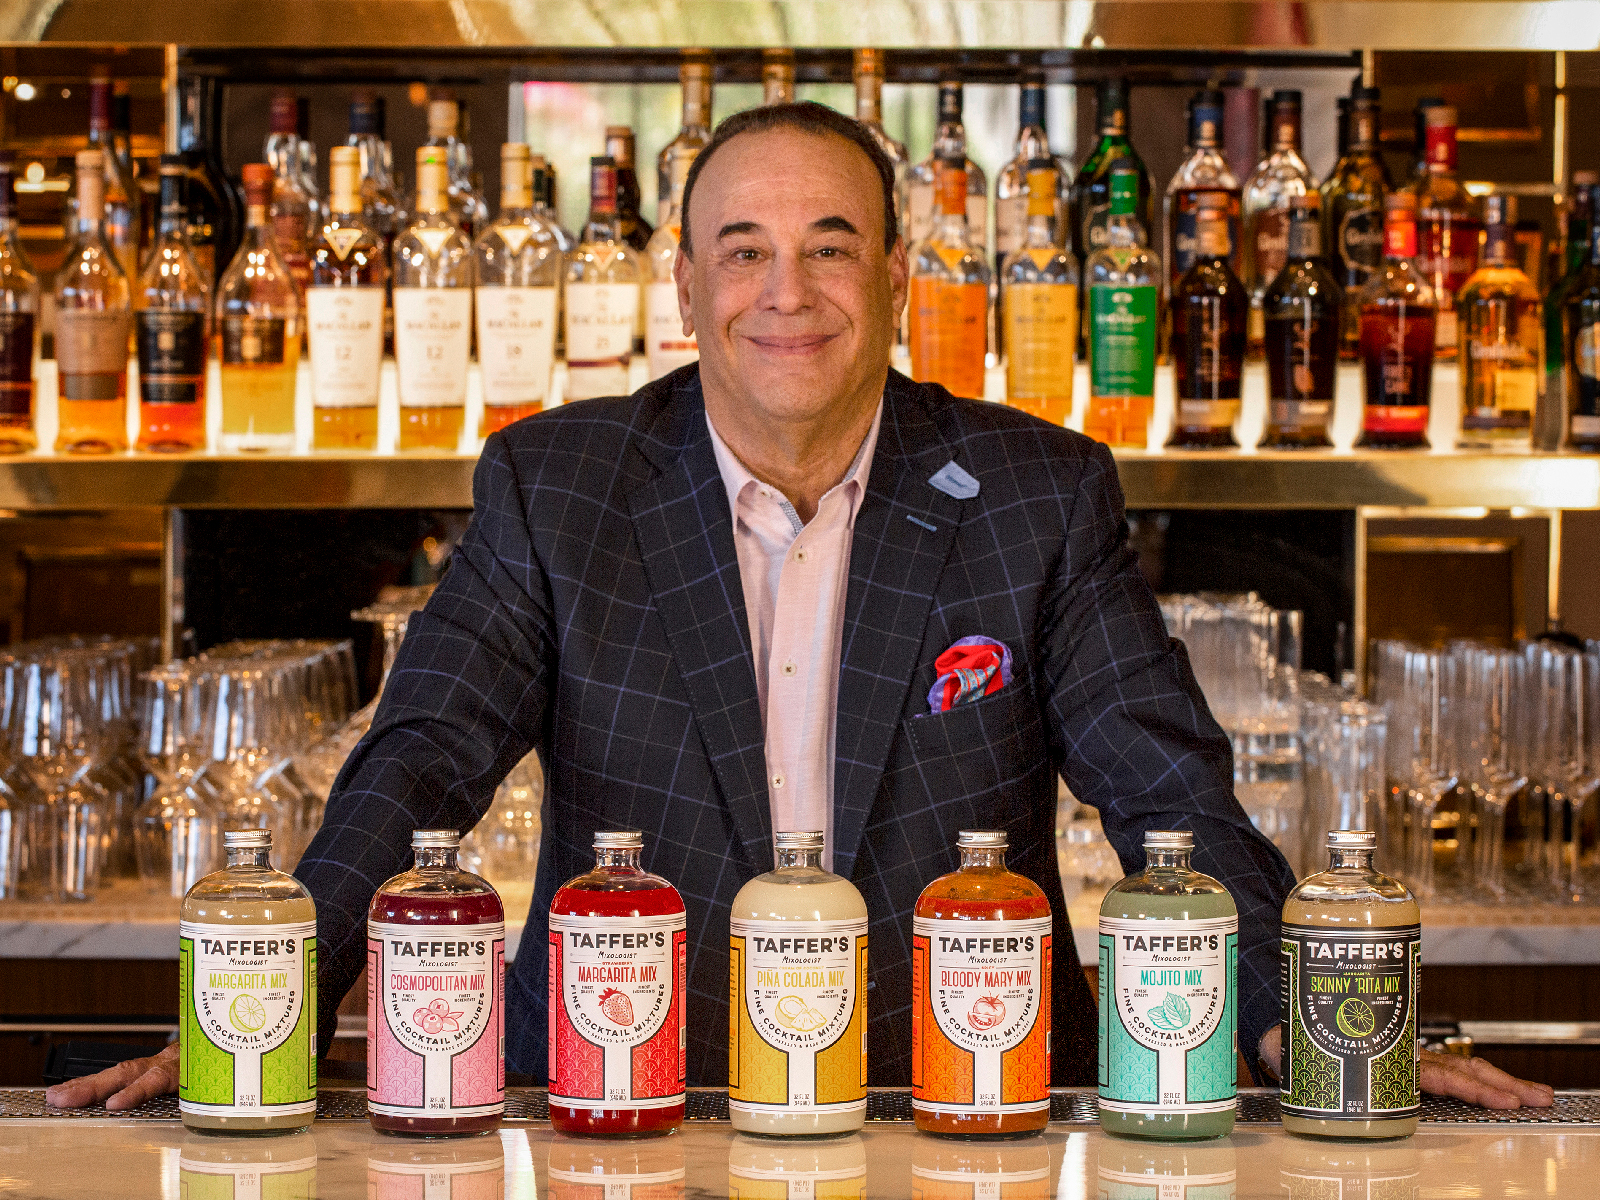 'Bar Rescue' Star Jon Taffer Released His Own Line of Cocktail Mixers